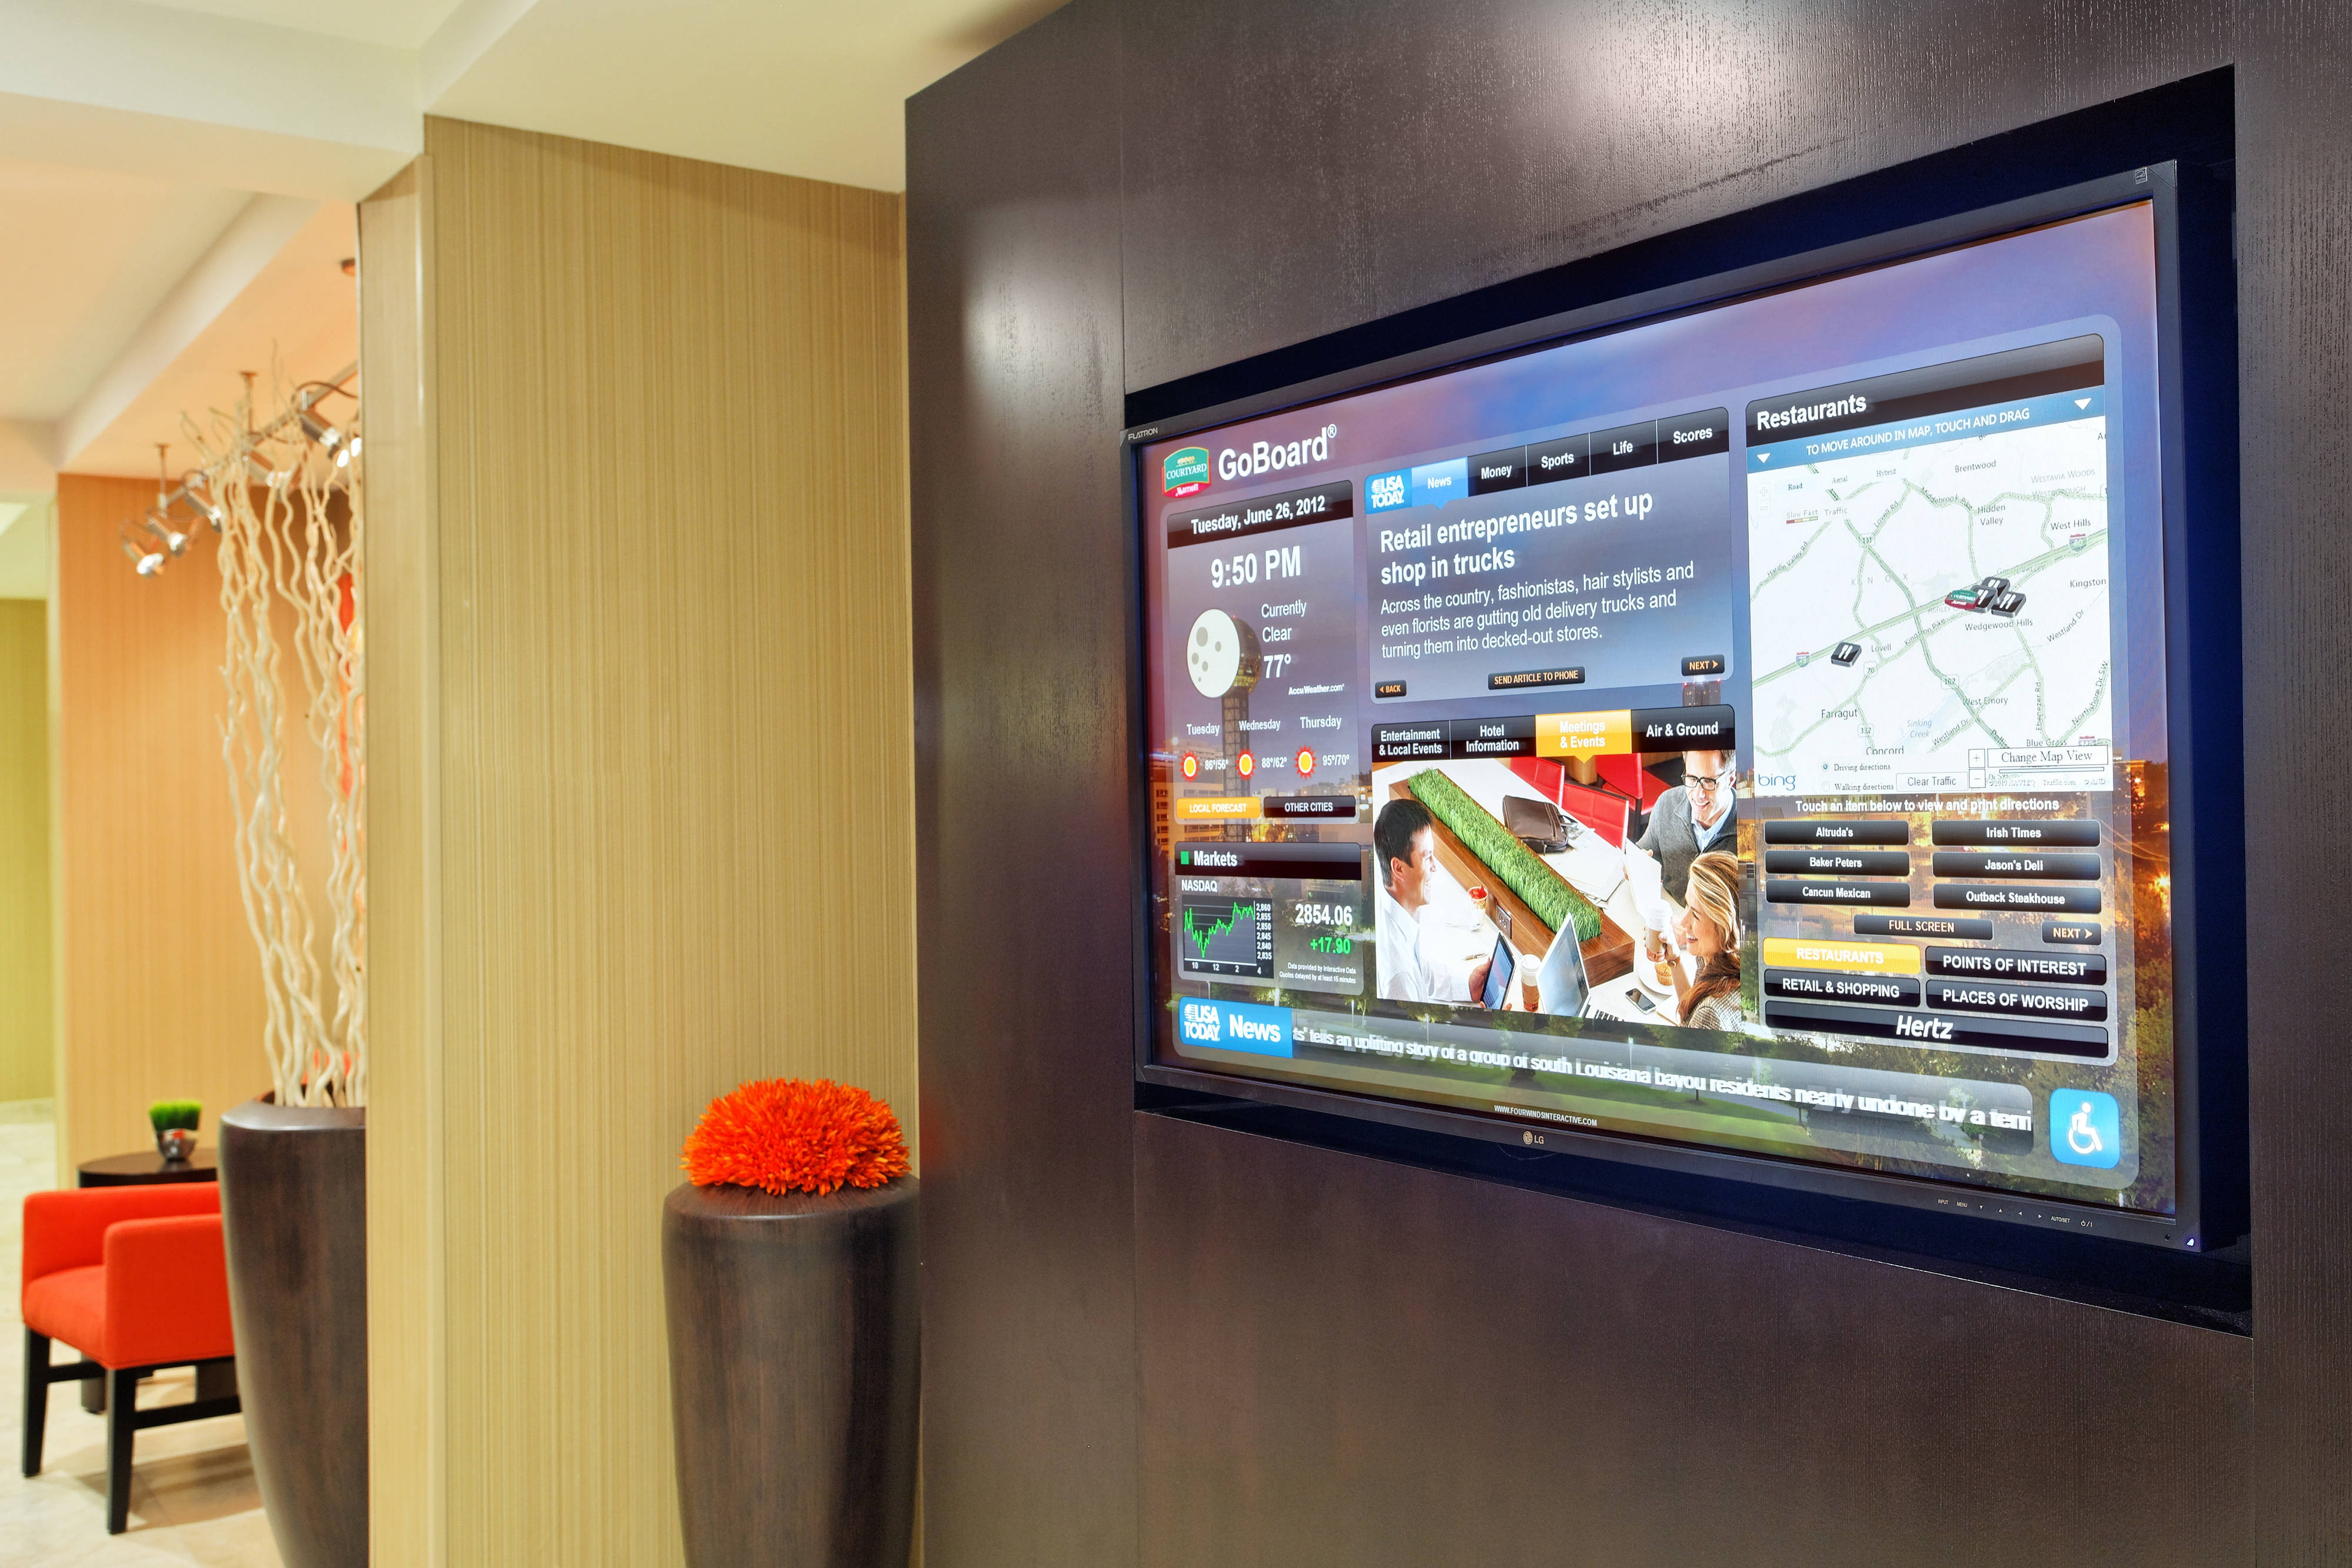 Catch up on the latest news with the new Courtyard GoBoard, located in the hotel lobby for your convenience. Enjoy an interactive experience as you navigate the touch-screen display to access driving